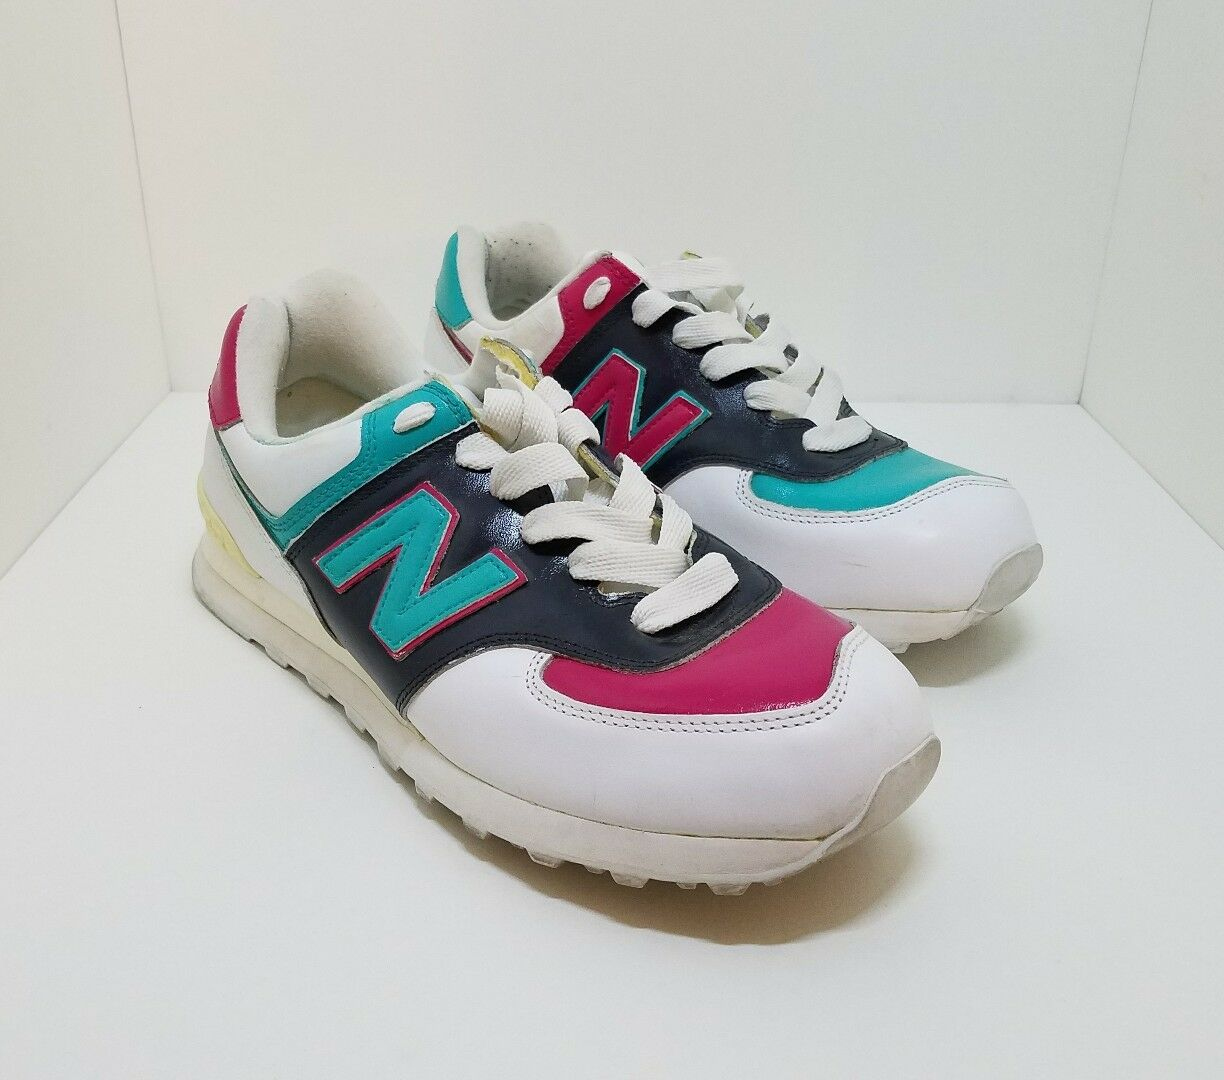 New Balance M574WHL Classic Multicolor Casual Athletic Sneakers Men's US 11.5